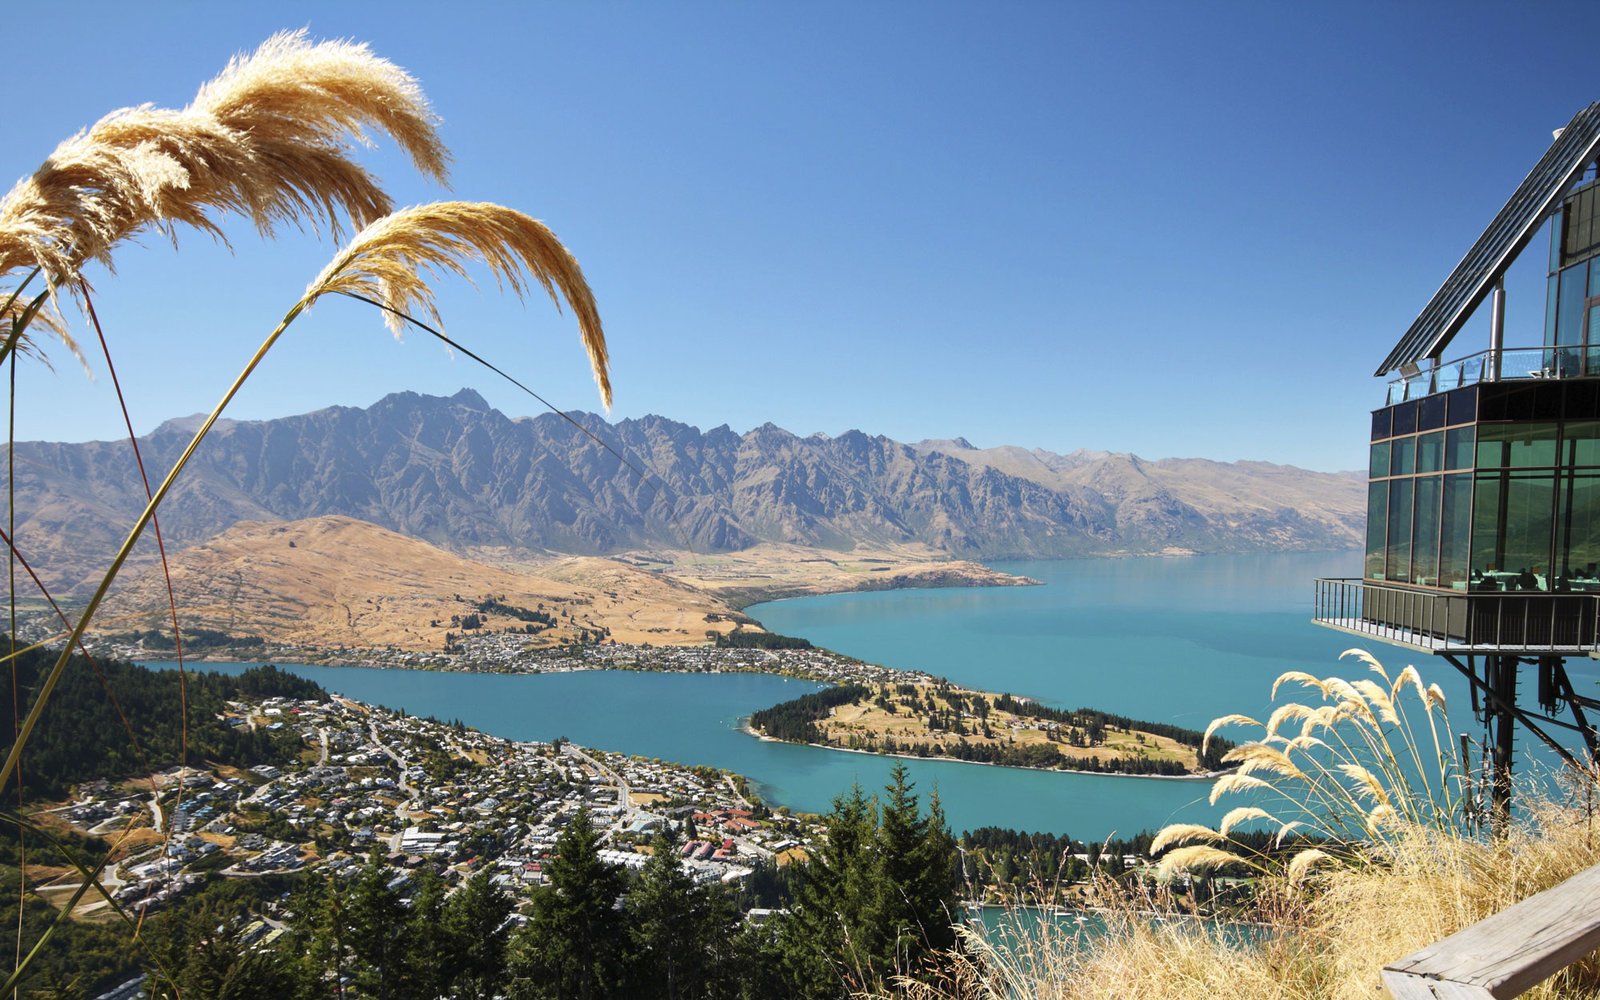 No. 2: Queenstown, New Zealand